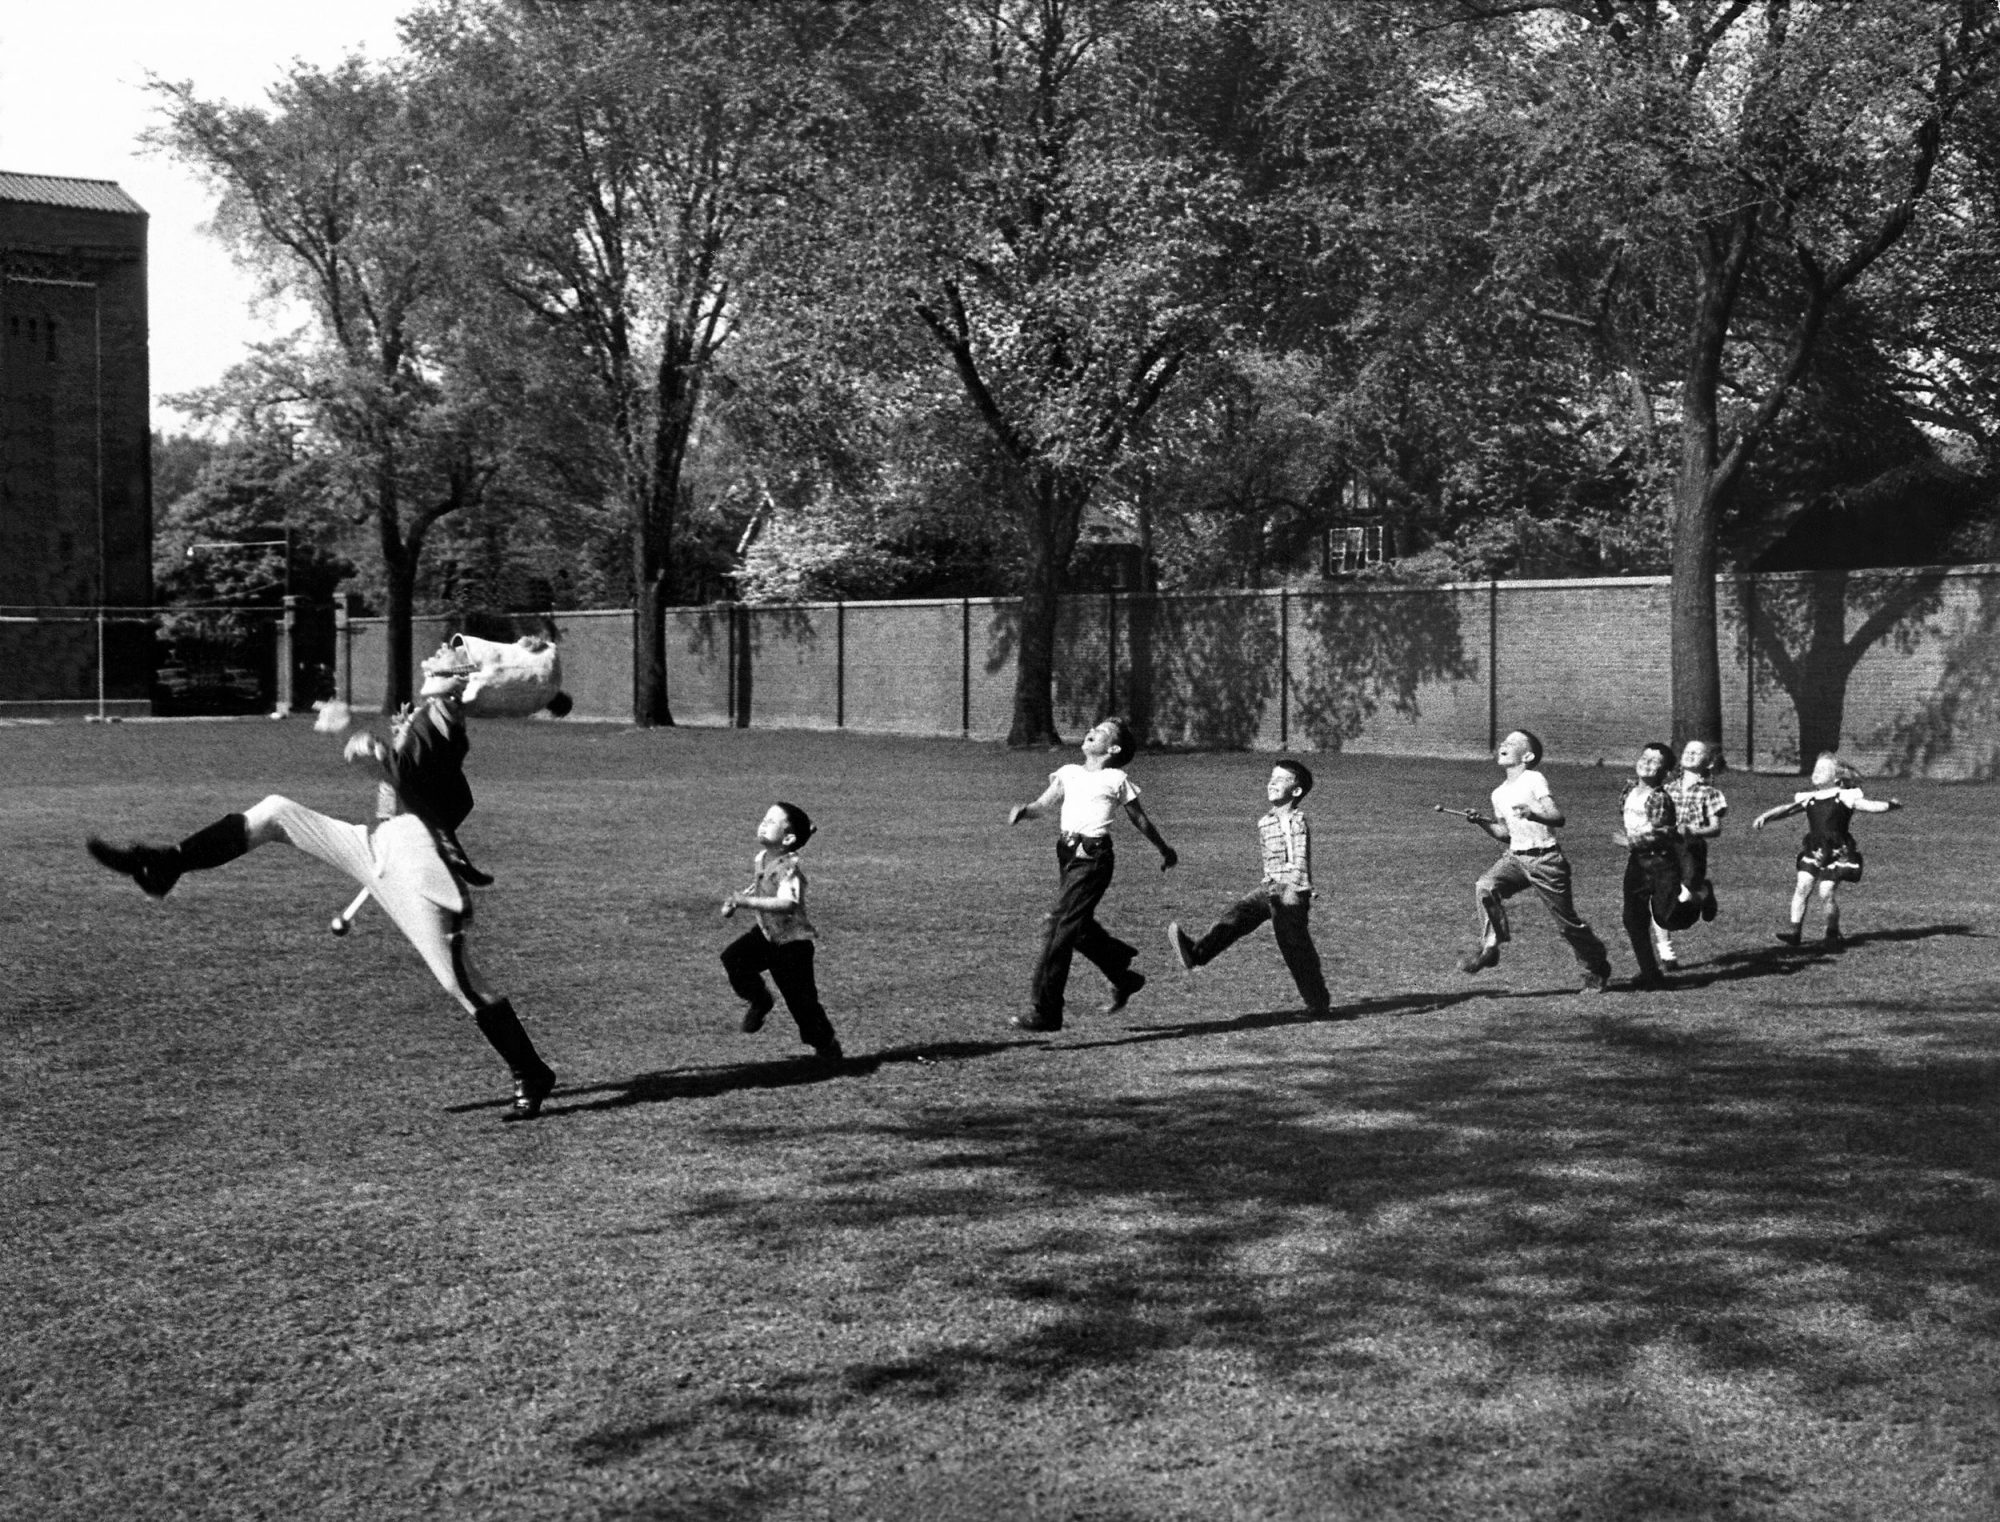 Fotó: Alfred Eisenstaedt: Michigan Egyetem, USA, 1951 © Time & Life Pictures/Getty Images